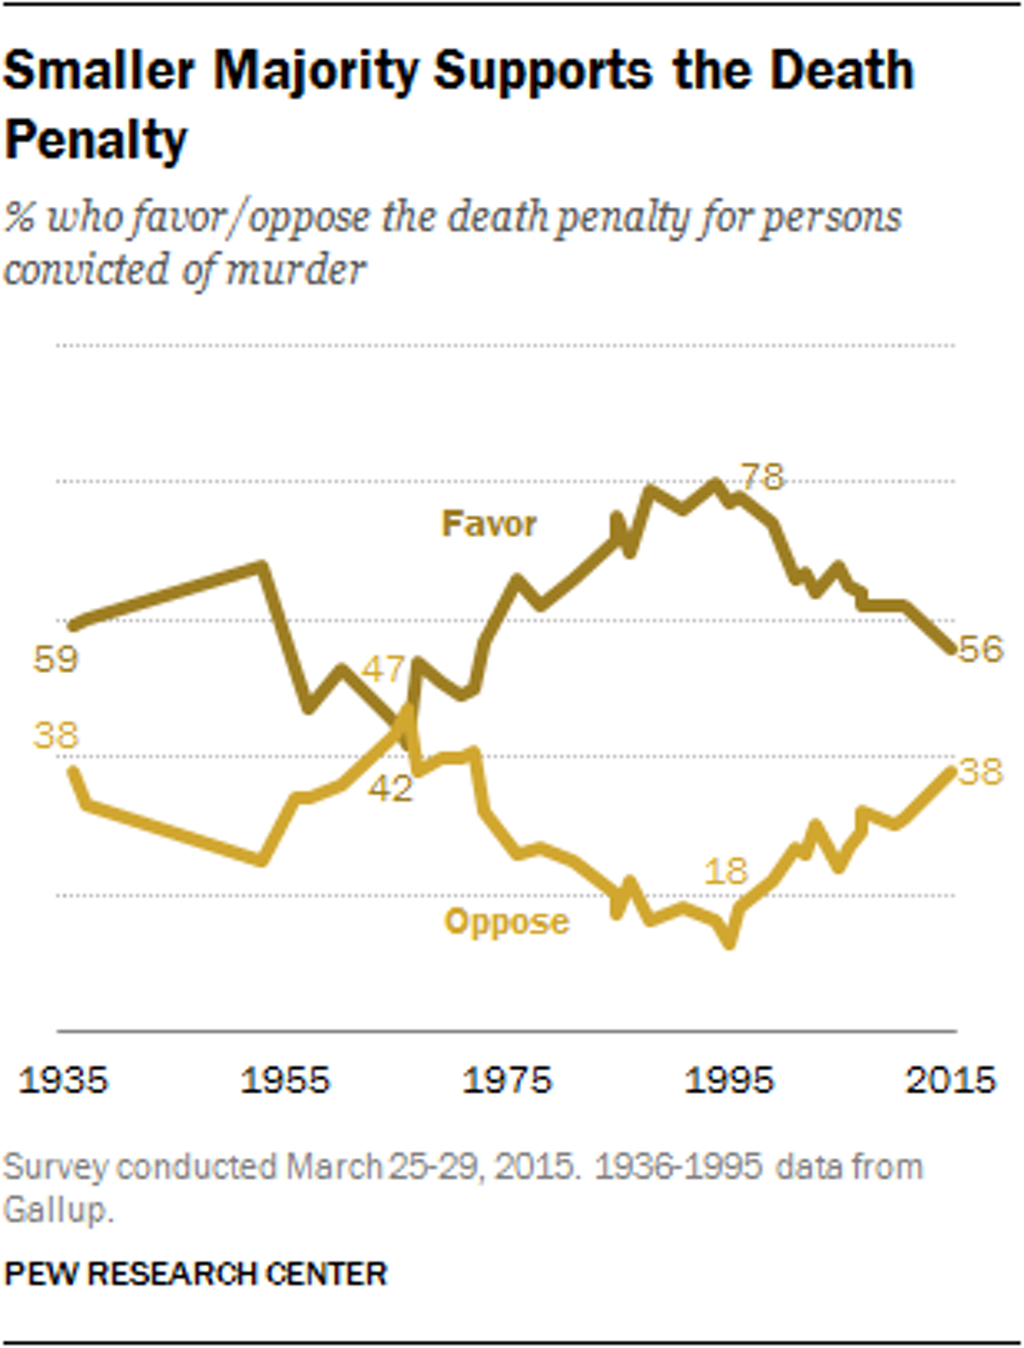 National Polls Show Historic Declines in Support for Death Penalty